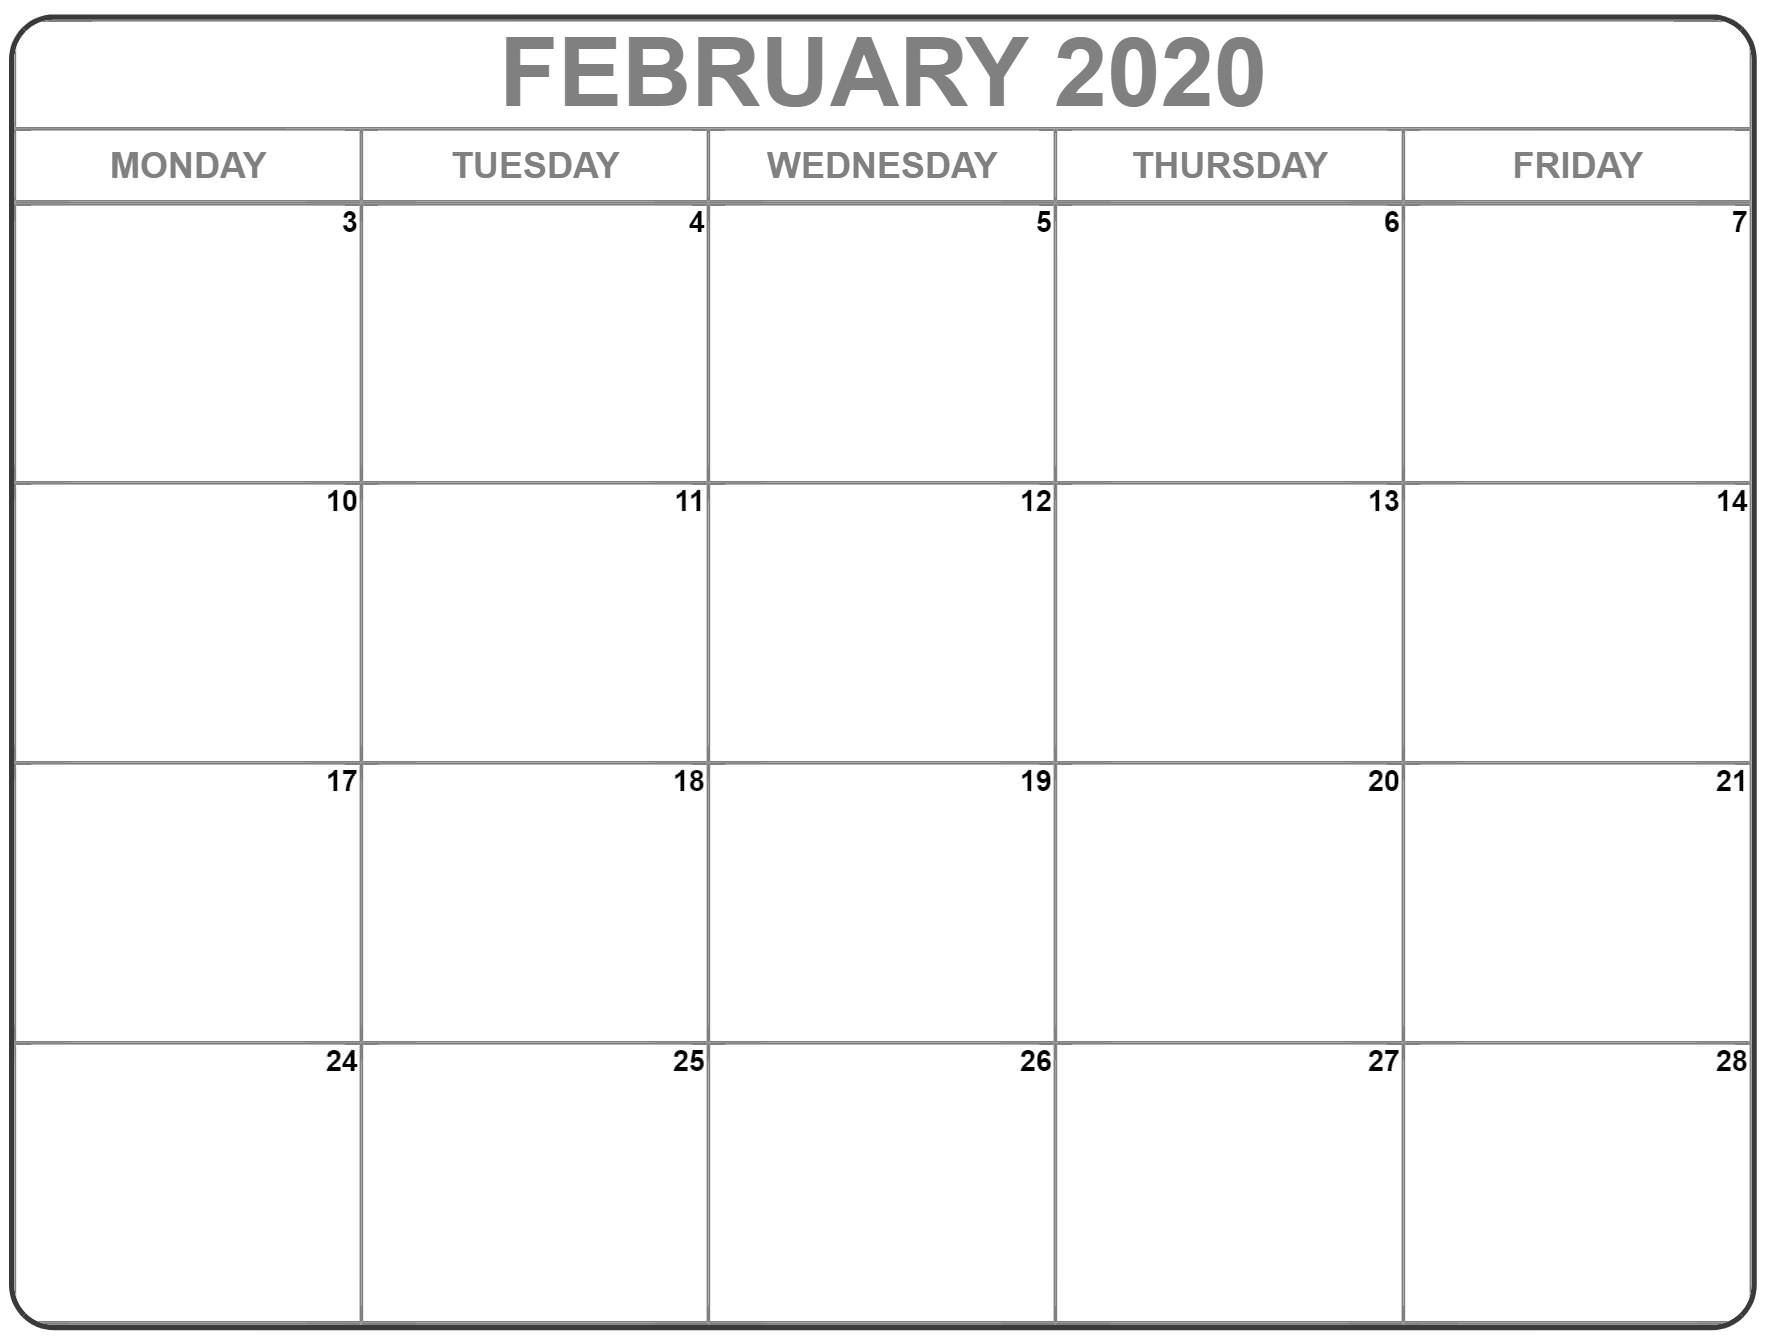 February 2020 Monday Calendar | Monday To Sunday within Monday Through Friday Calendar